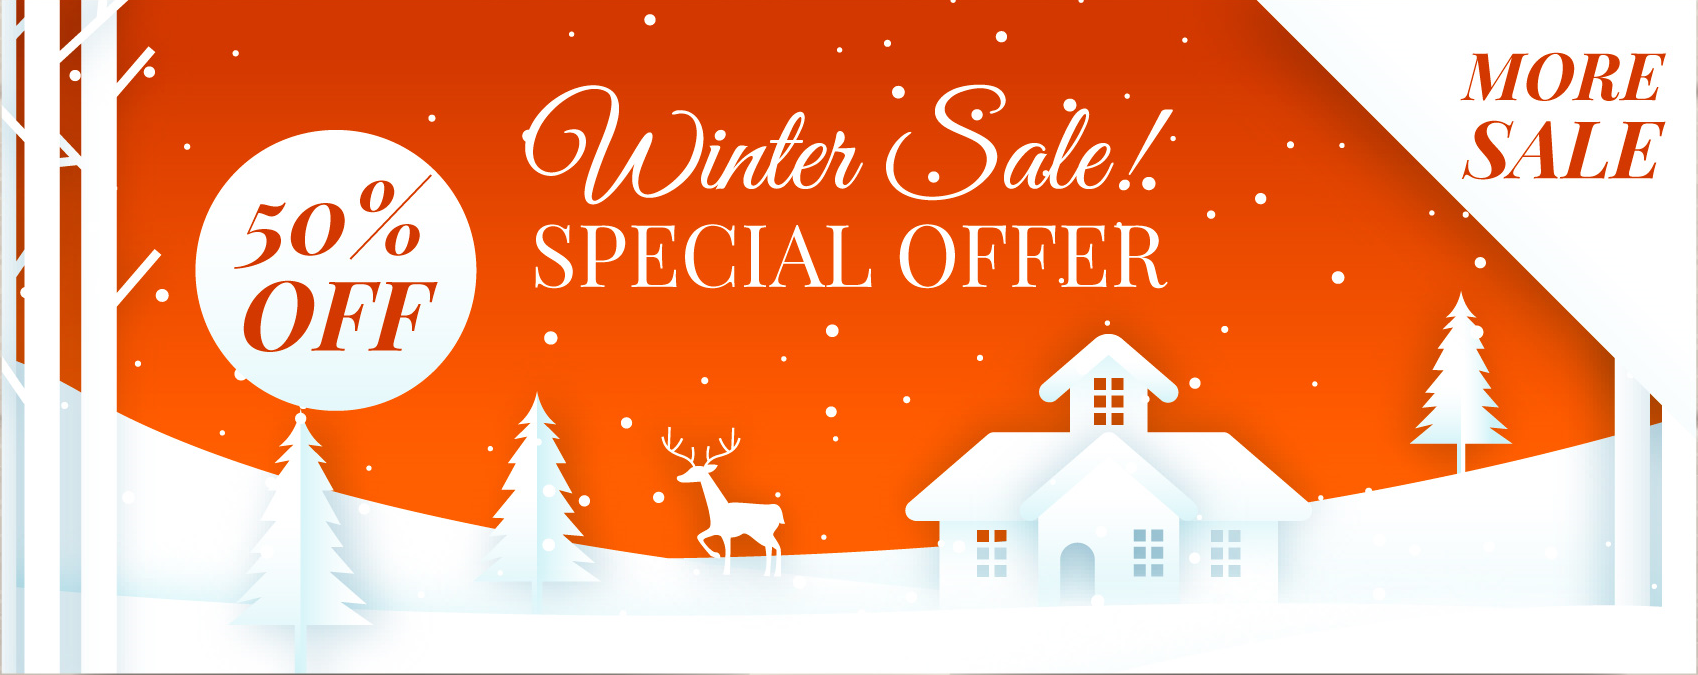 winter sale nestzones